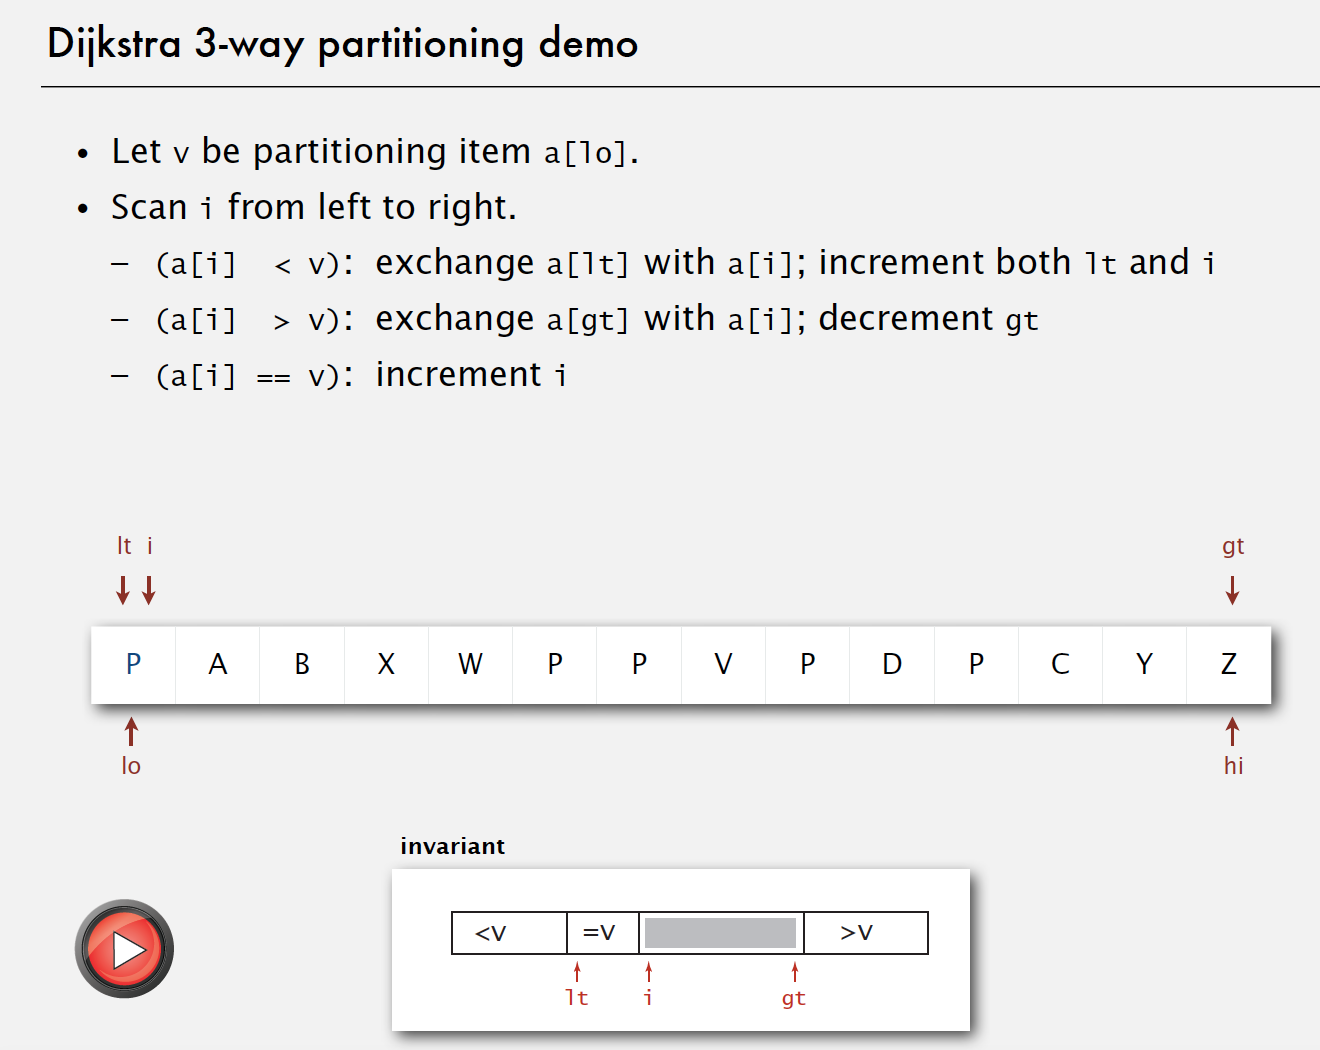 Dijkstra 3-Way partitioning